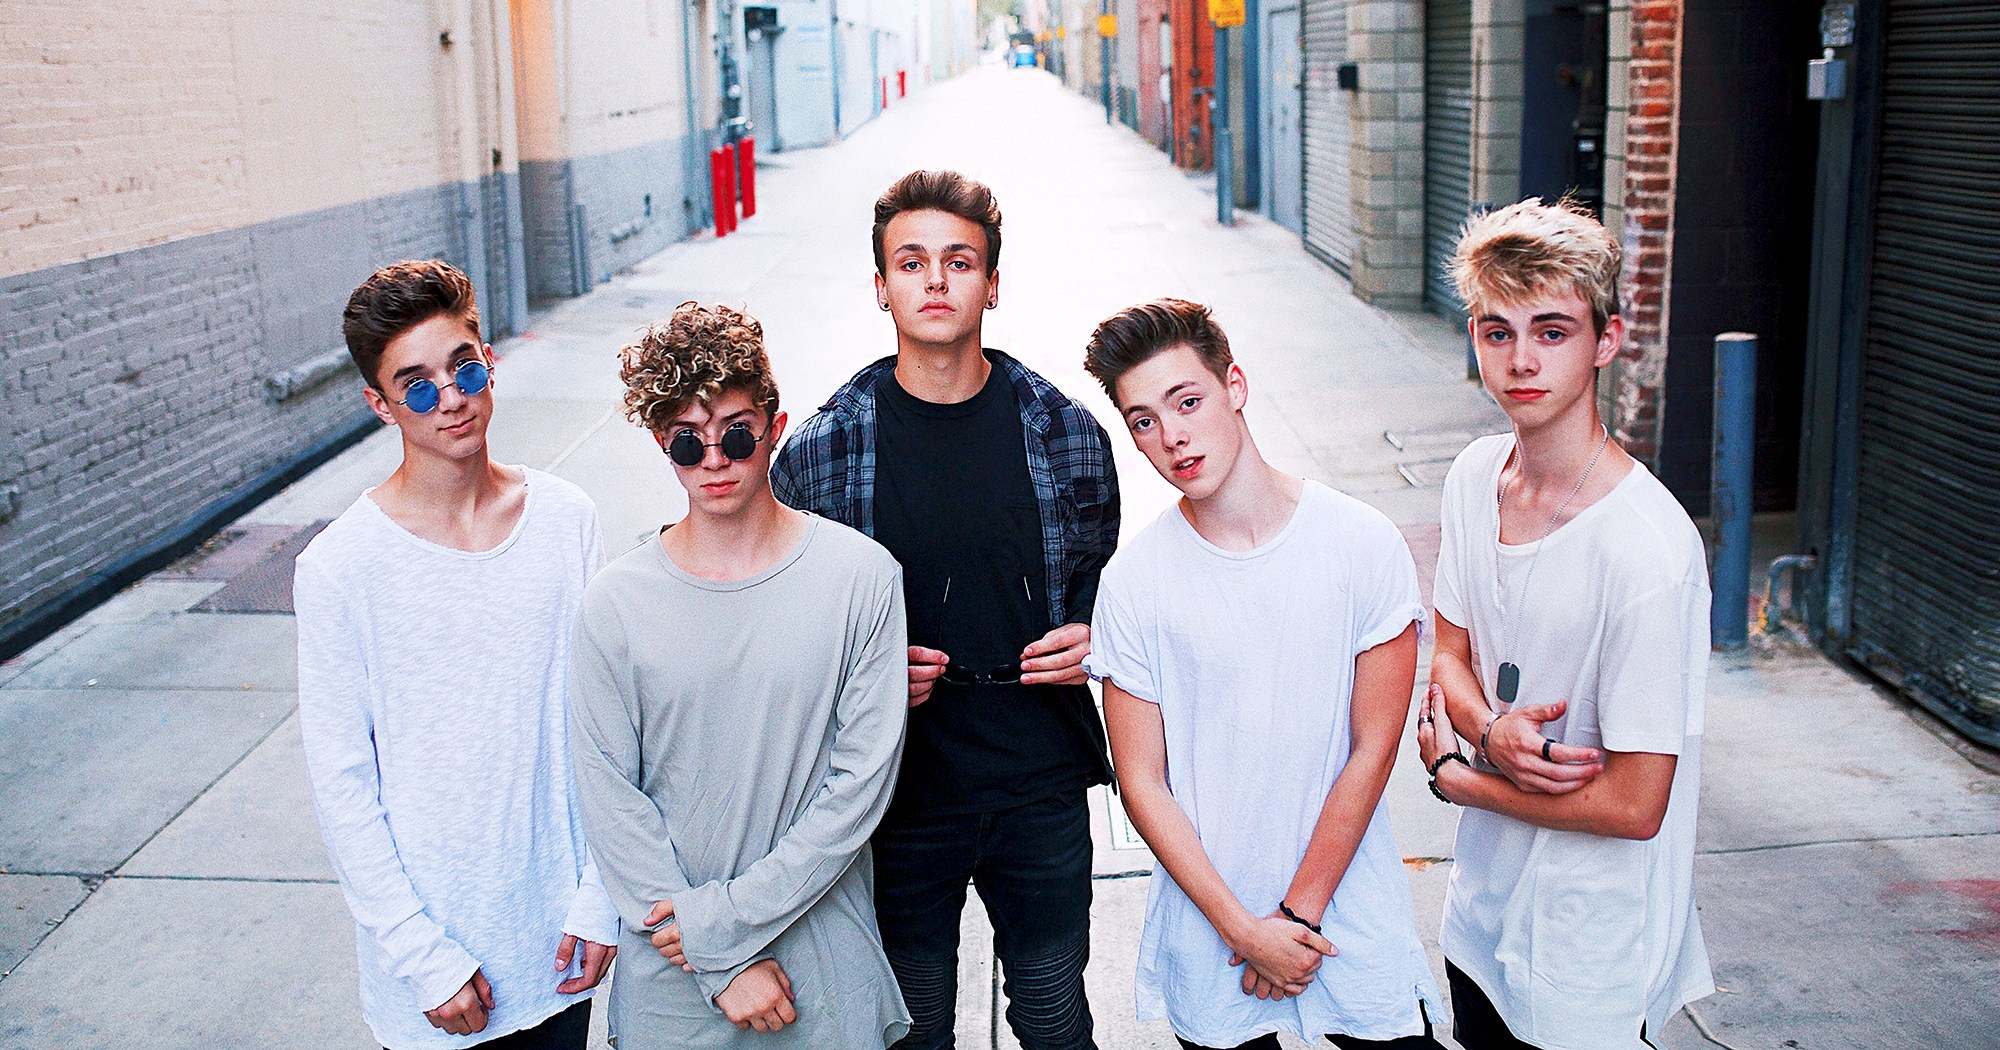 Why Don't We Is Your New Favorite Boy Band